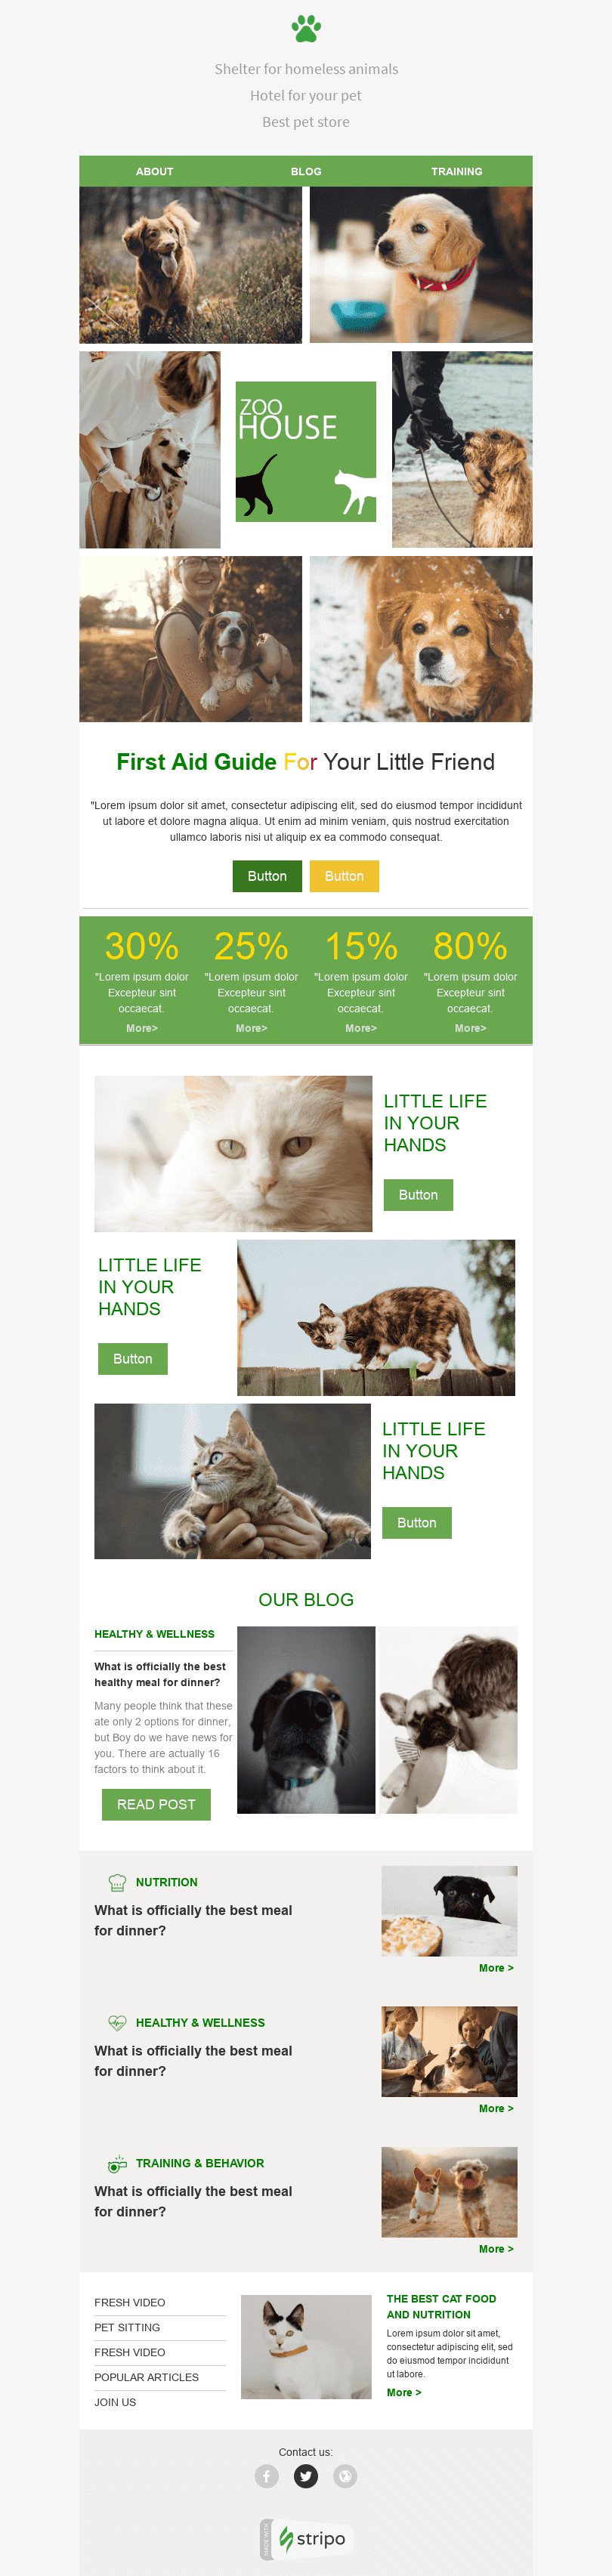 Promo Email Template «Pets Place» for Pets industry desktop view